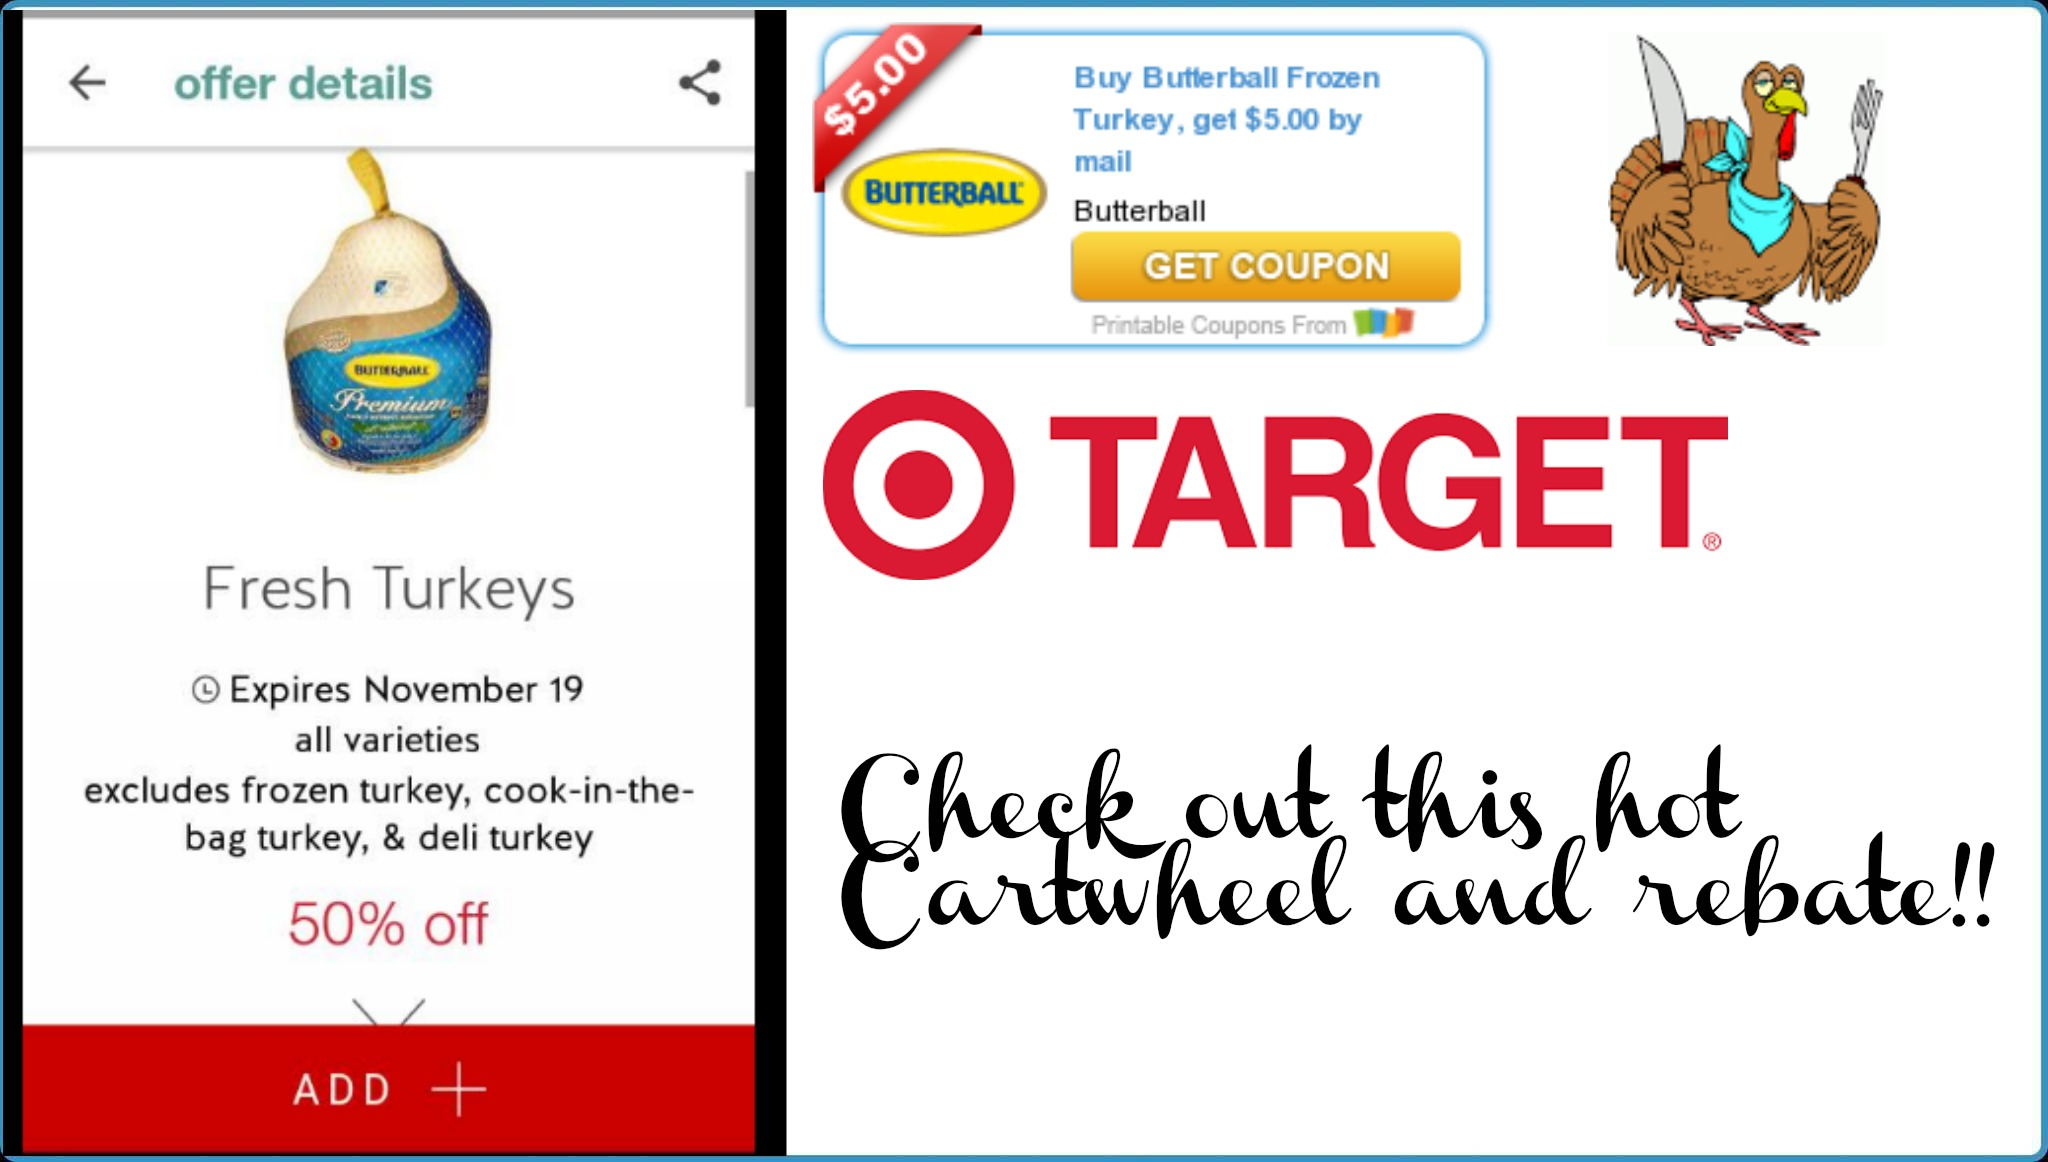 photo regarding Butterball Coupons Turkey Printable known as 50% off Cartwheel upon Butterball turkey and a coupon rebate